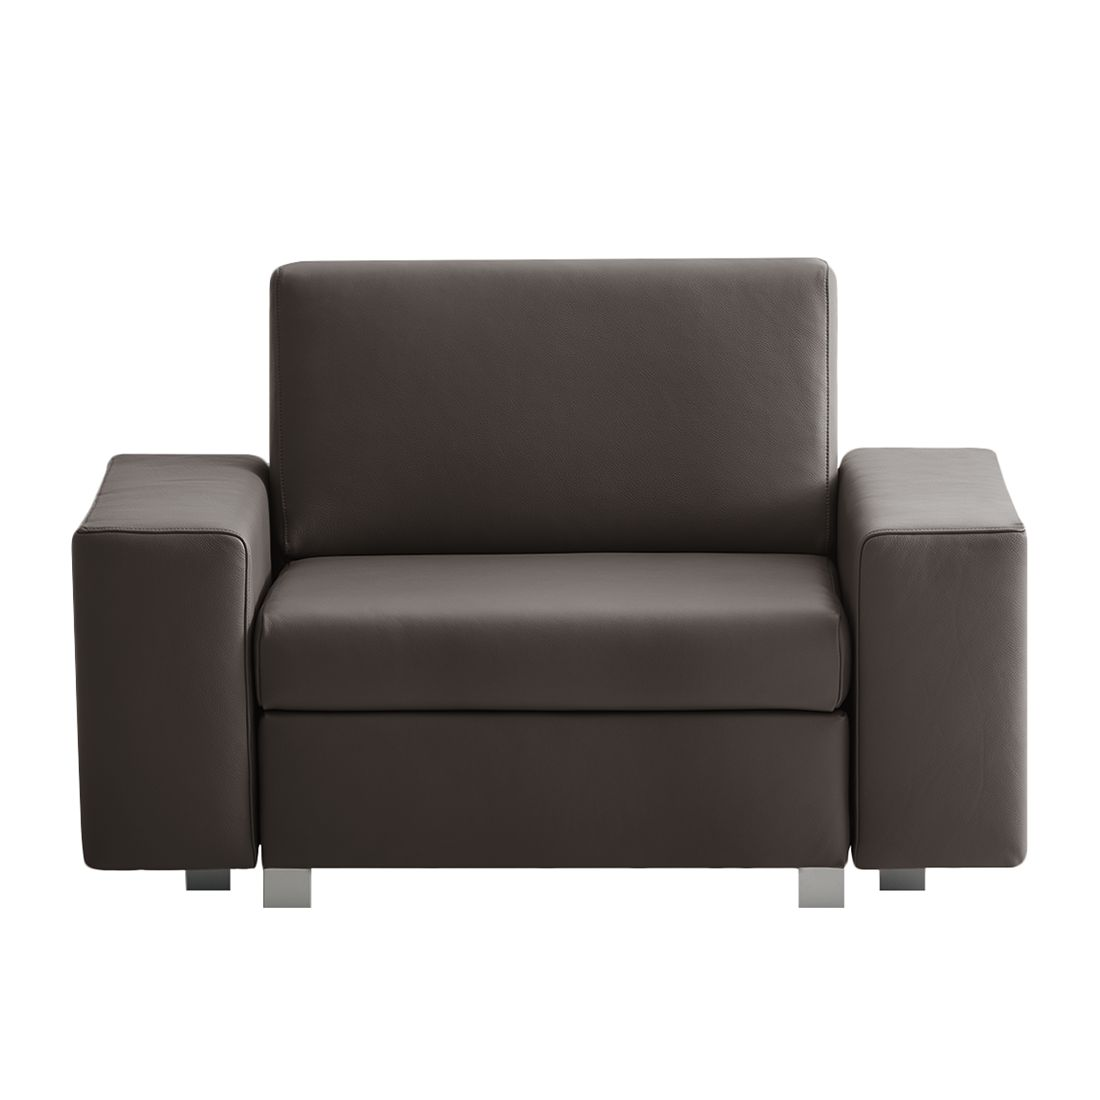 Fauteuil convertible Plaza